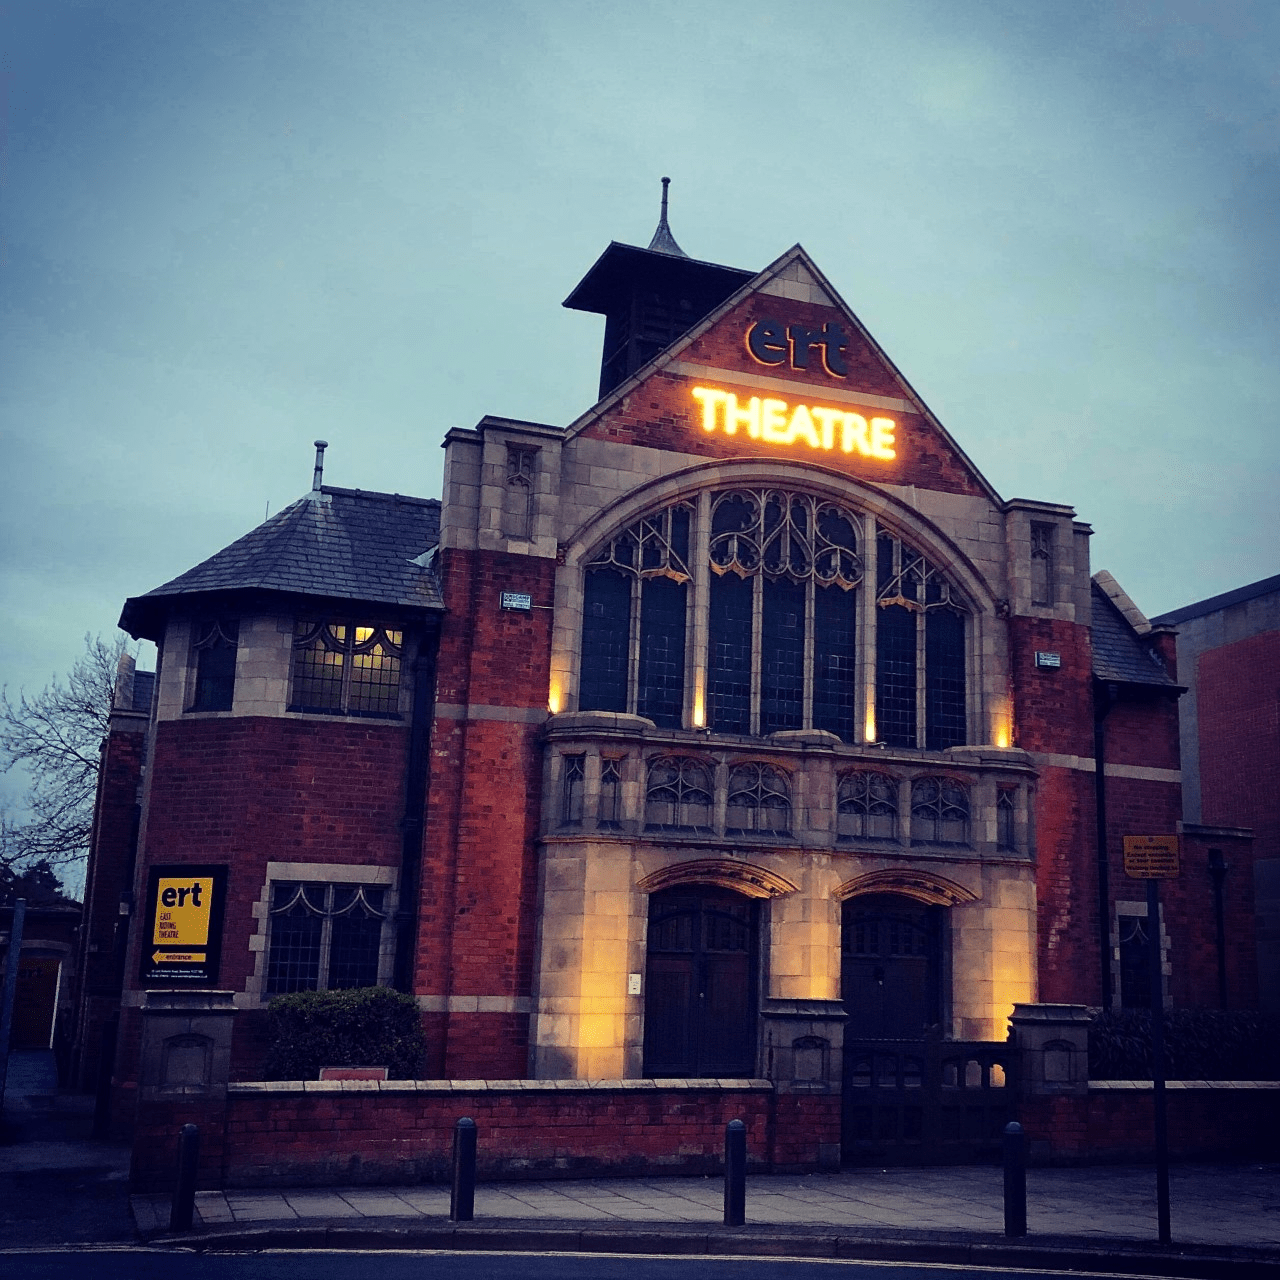 Image of the East Riding theatre building at night, illuminated by lights.